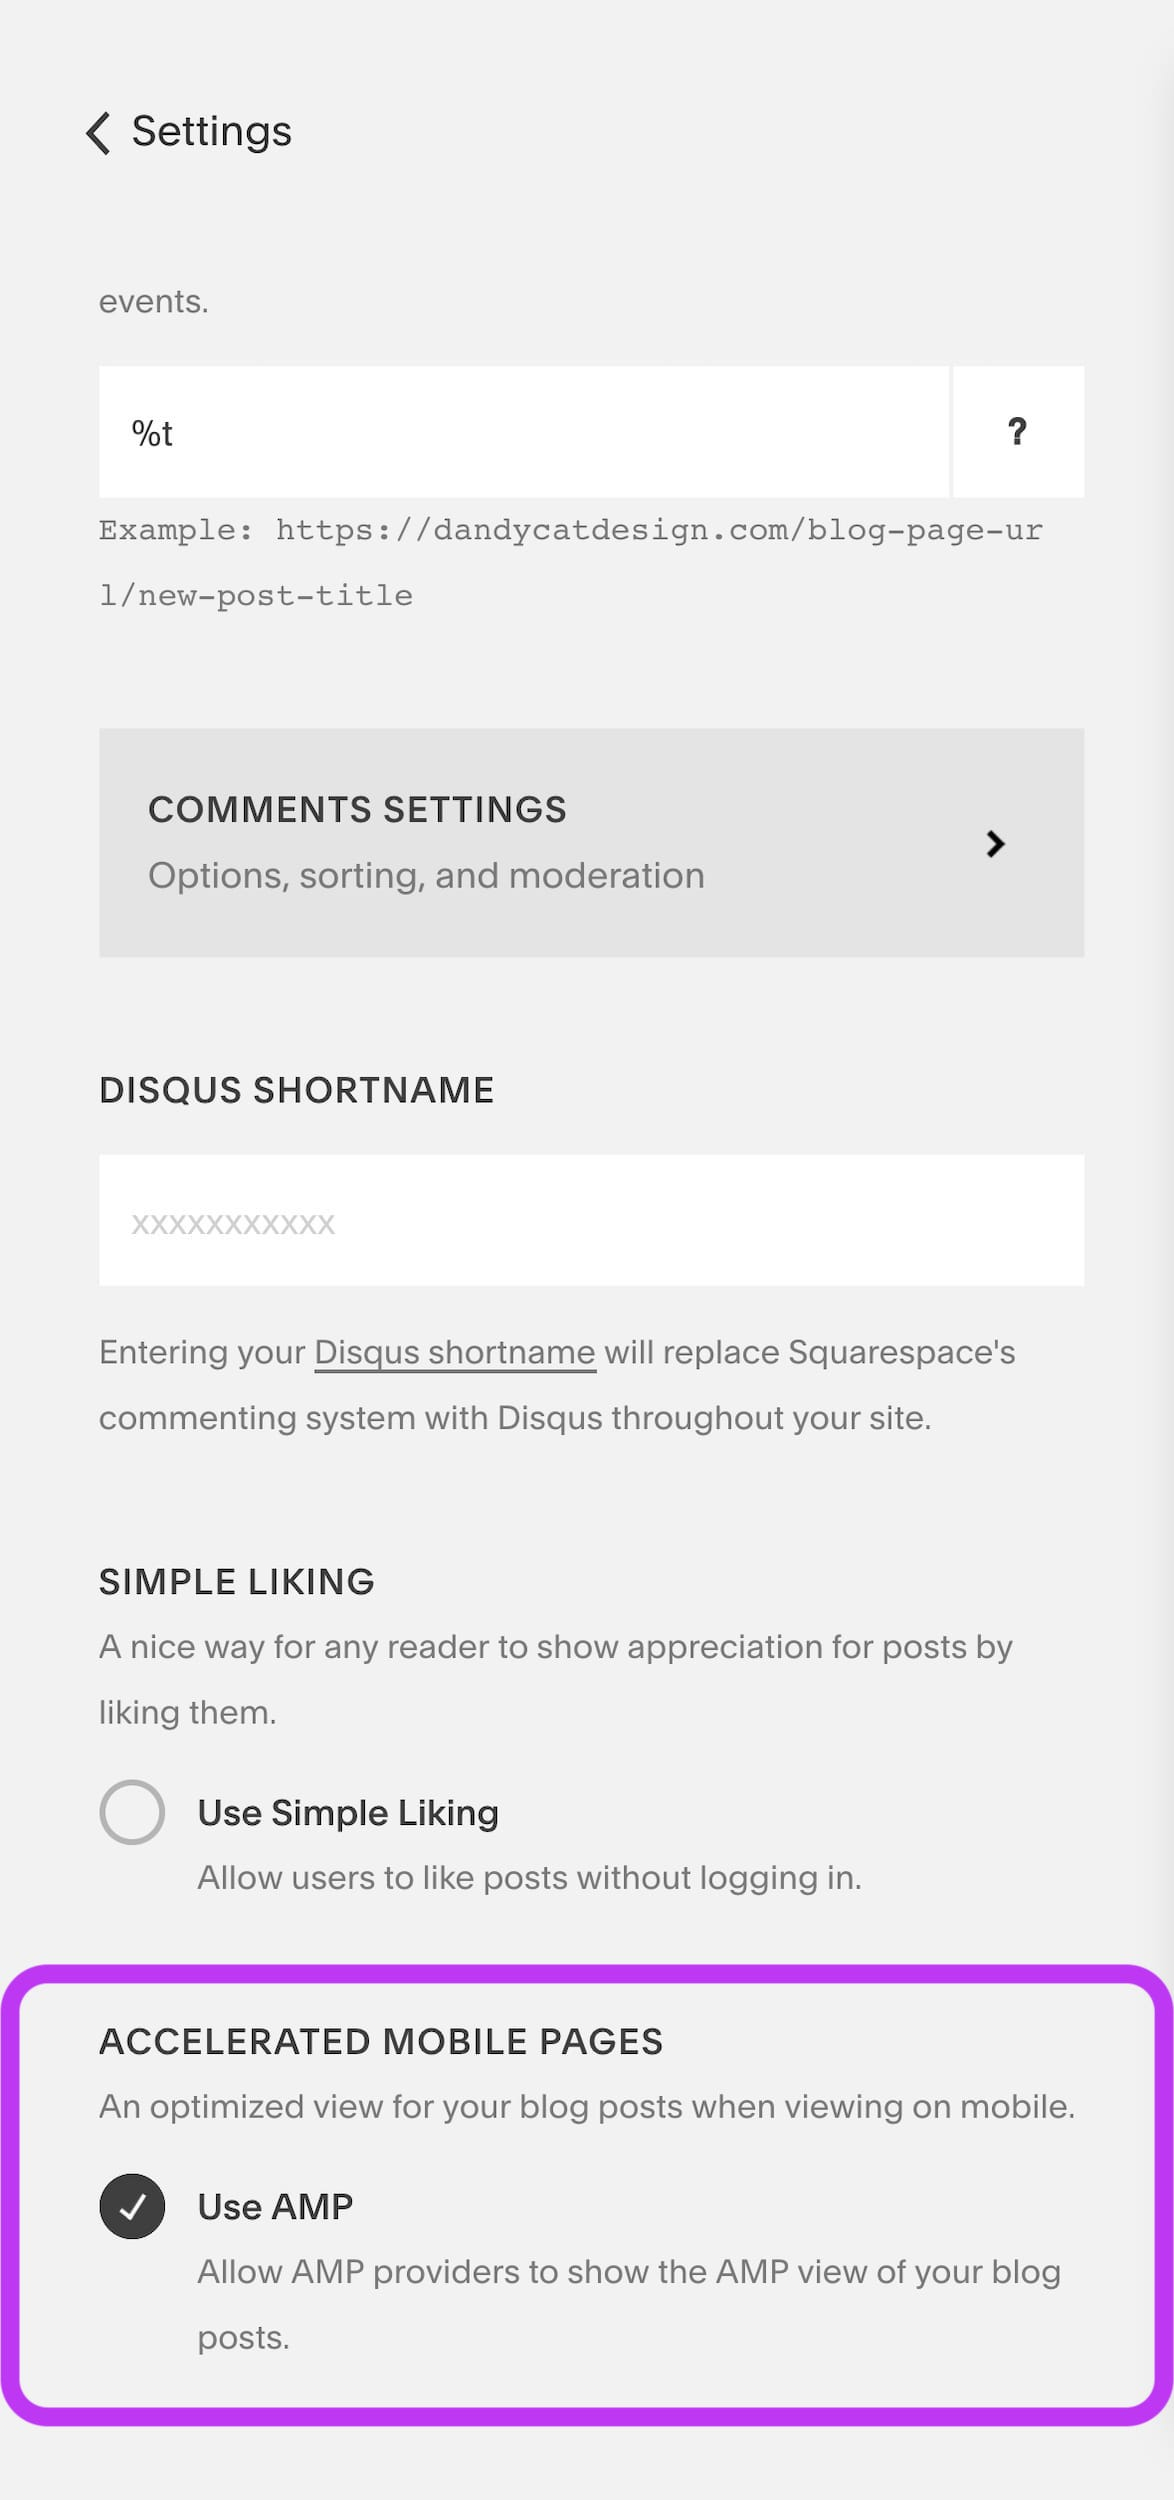 An image displaying how to turn on Google AMP for Squarespace blog posts.